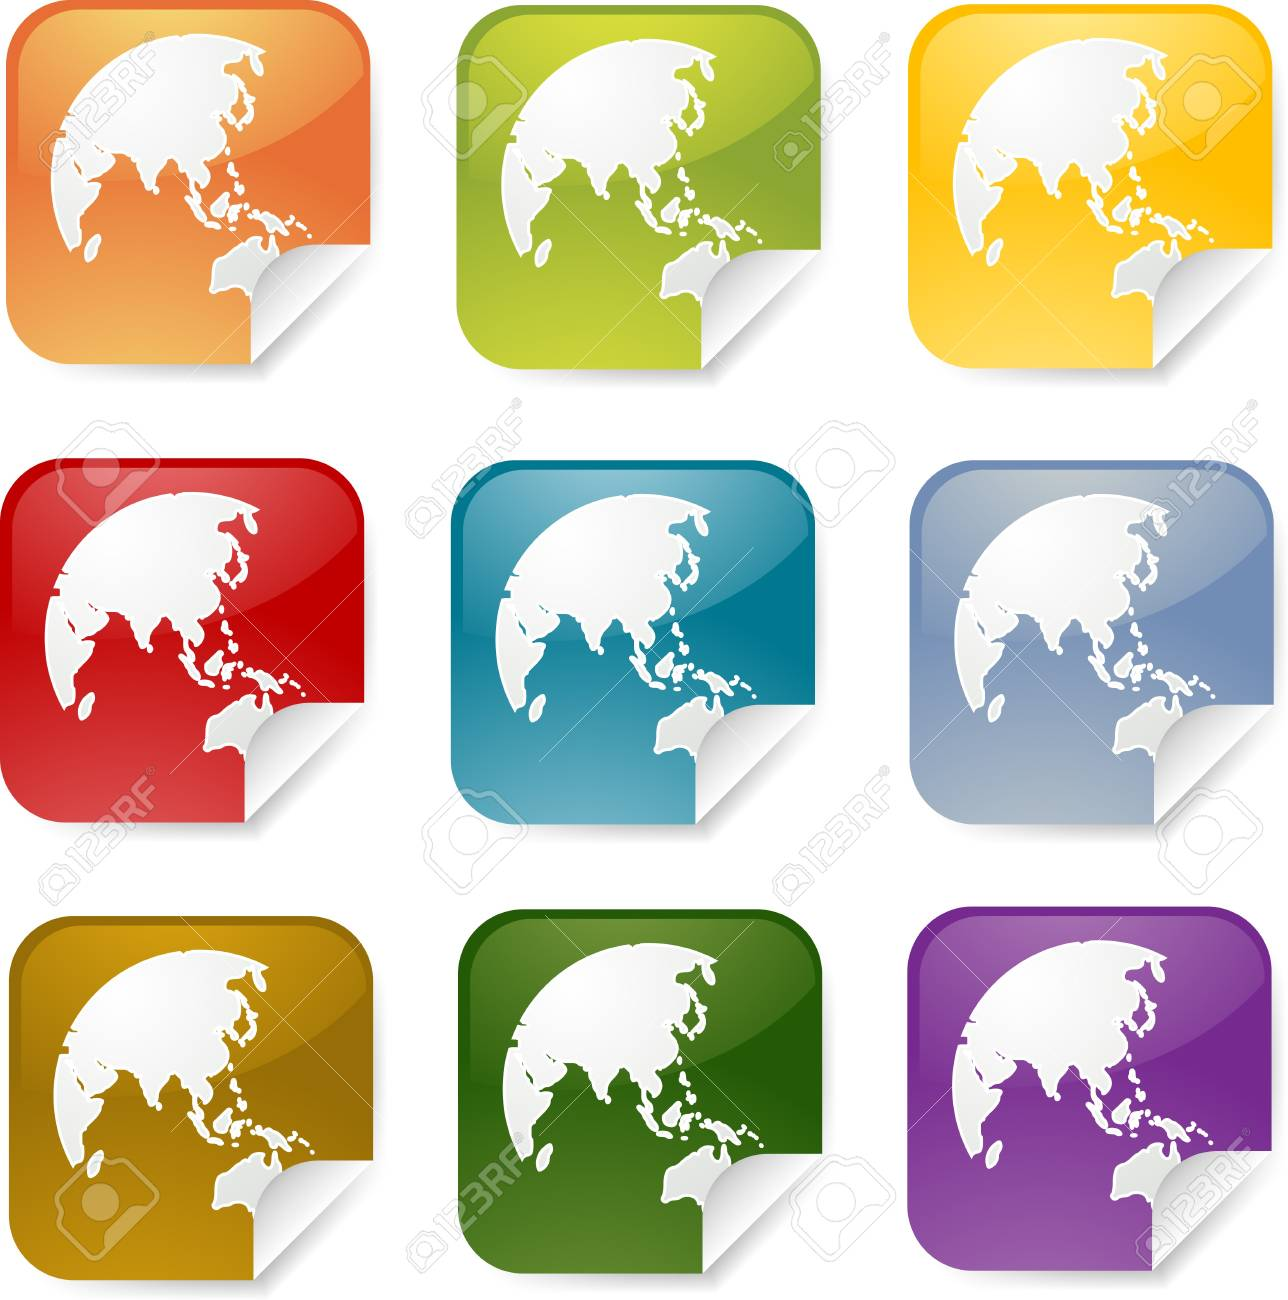 Map of Asia on square sticker, various colors Stock Photo - 4522998